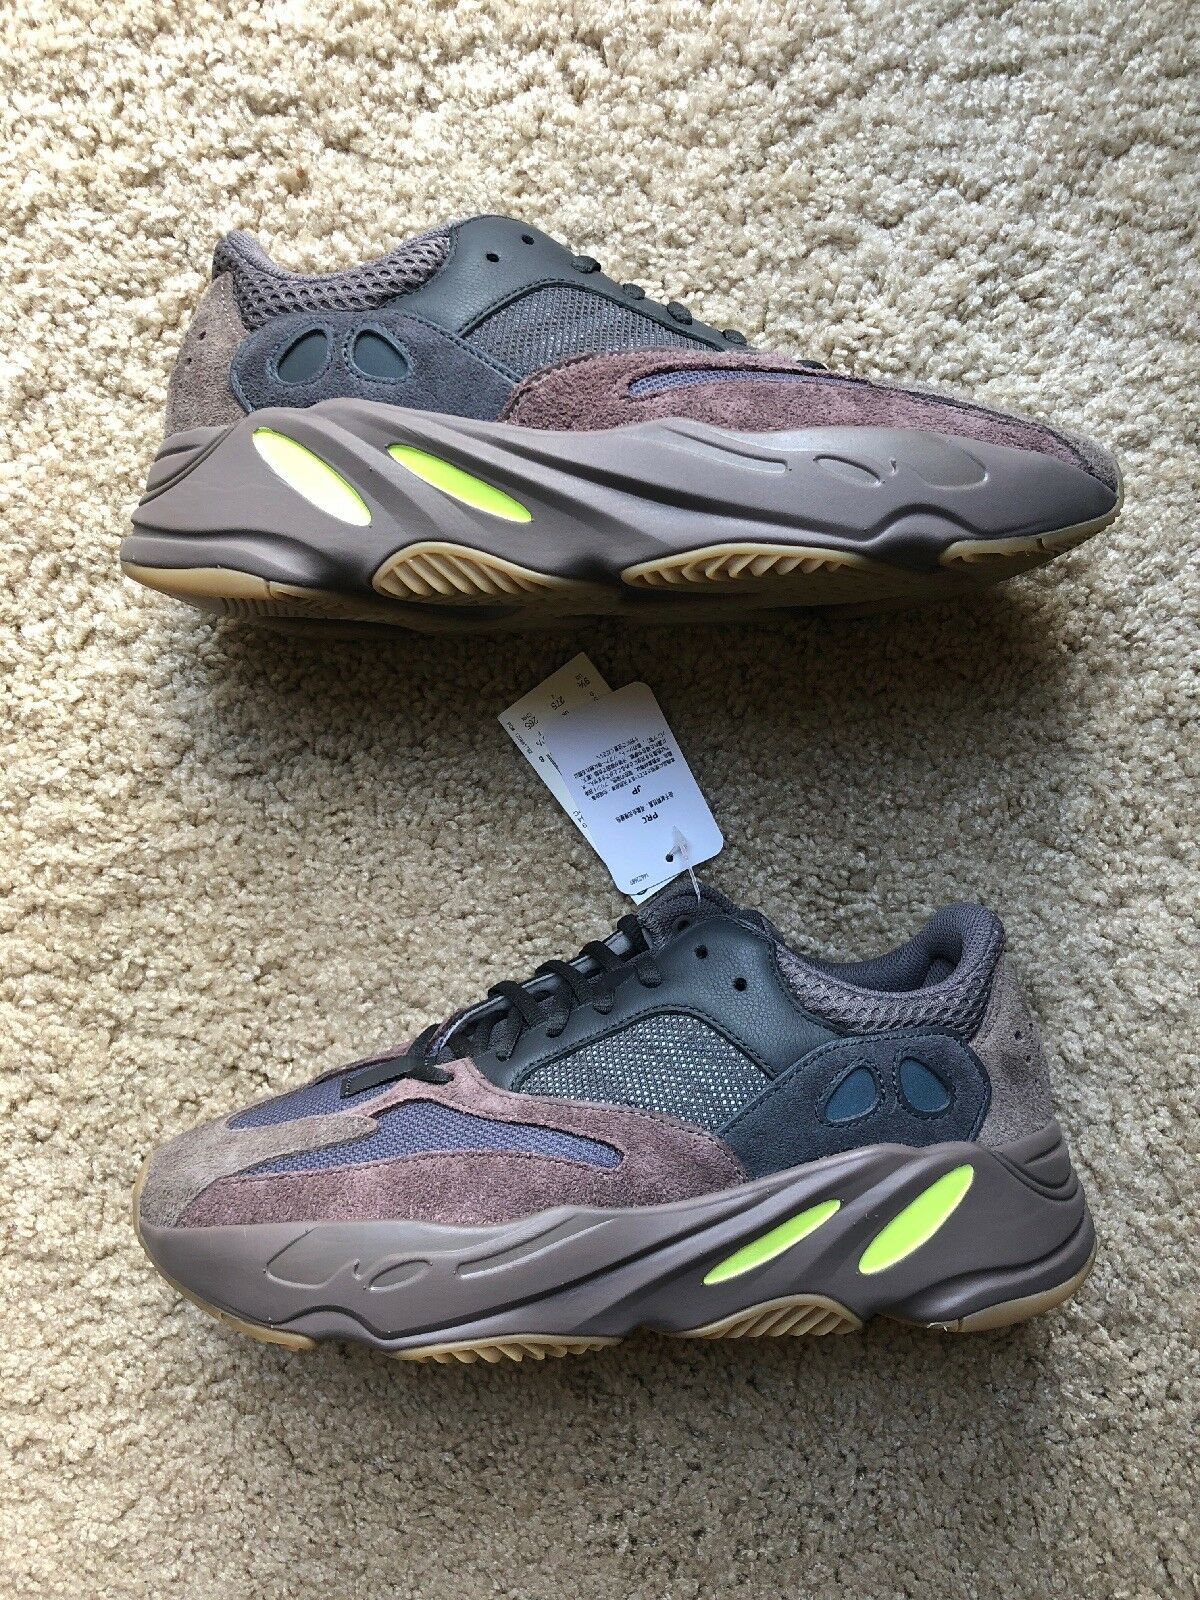 c5eff27957ebeb Adidas Yeezy 700 700 700 Mauve Size 9.5 US Mens - NEW IN BOX + FREE ...